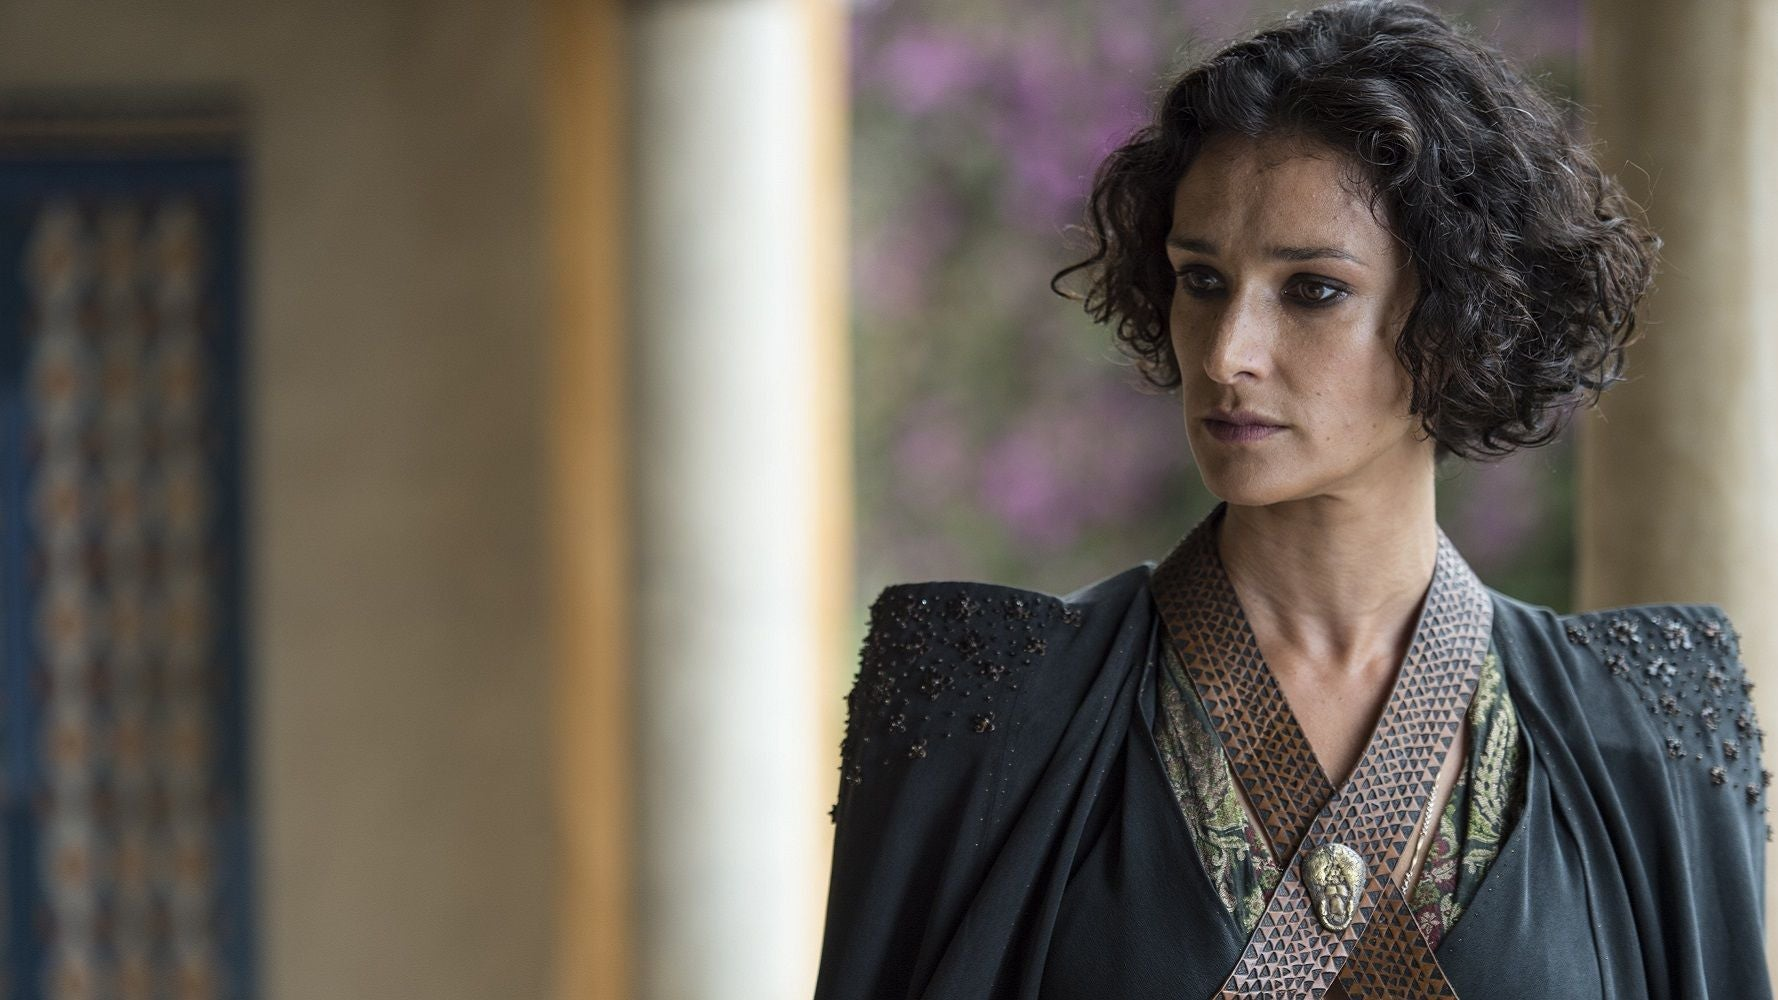 Indira Varma Spills The Fate Of Her Game Of Thrones Character, Ellaria Sand